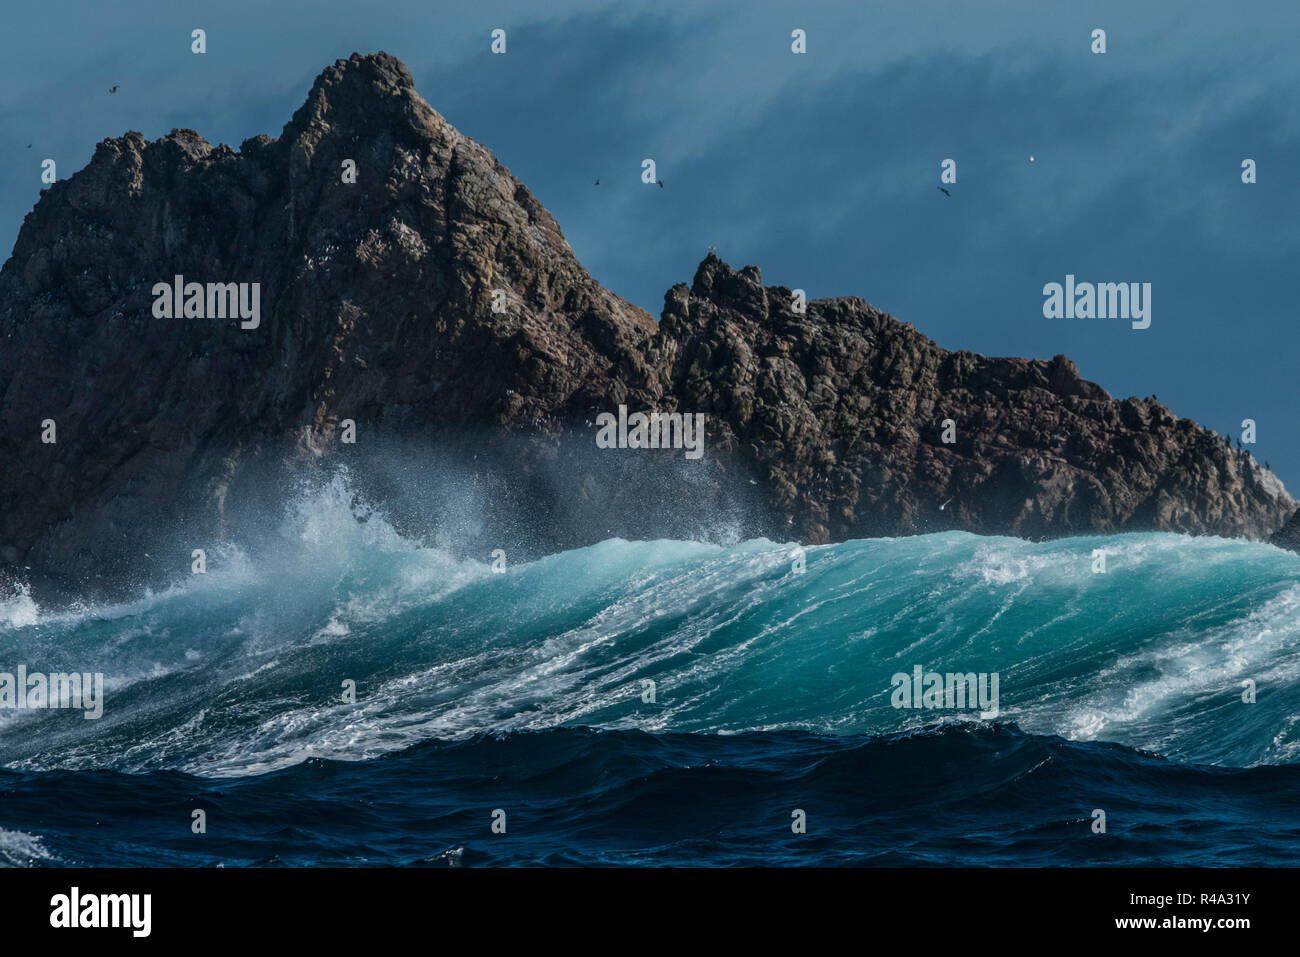 The Farallon islands jutting out of the pacific ocean as big waves roll in. Stock Photo